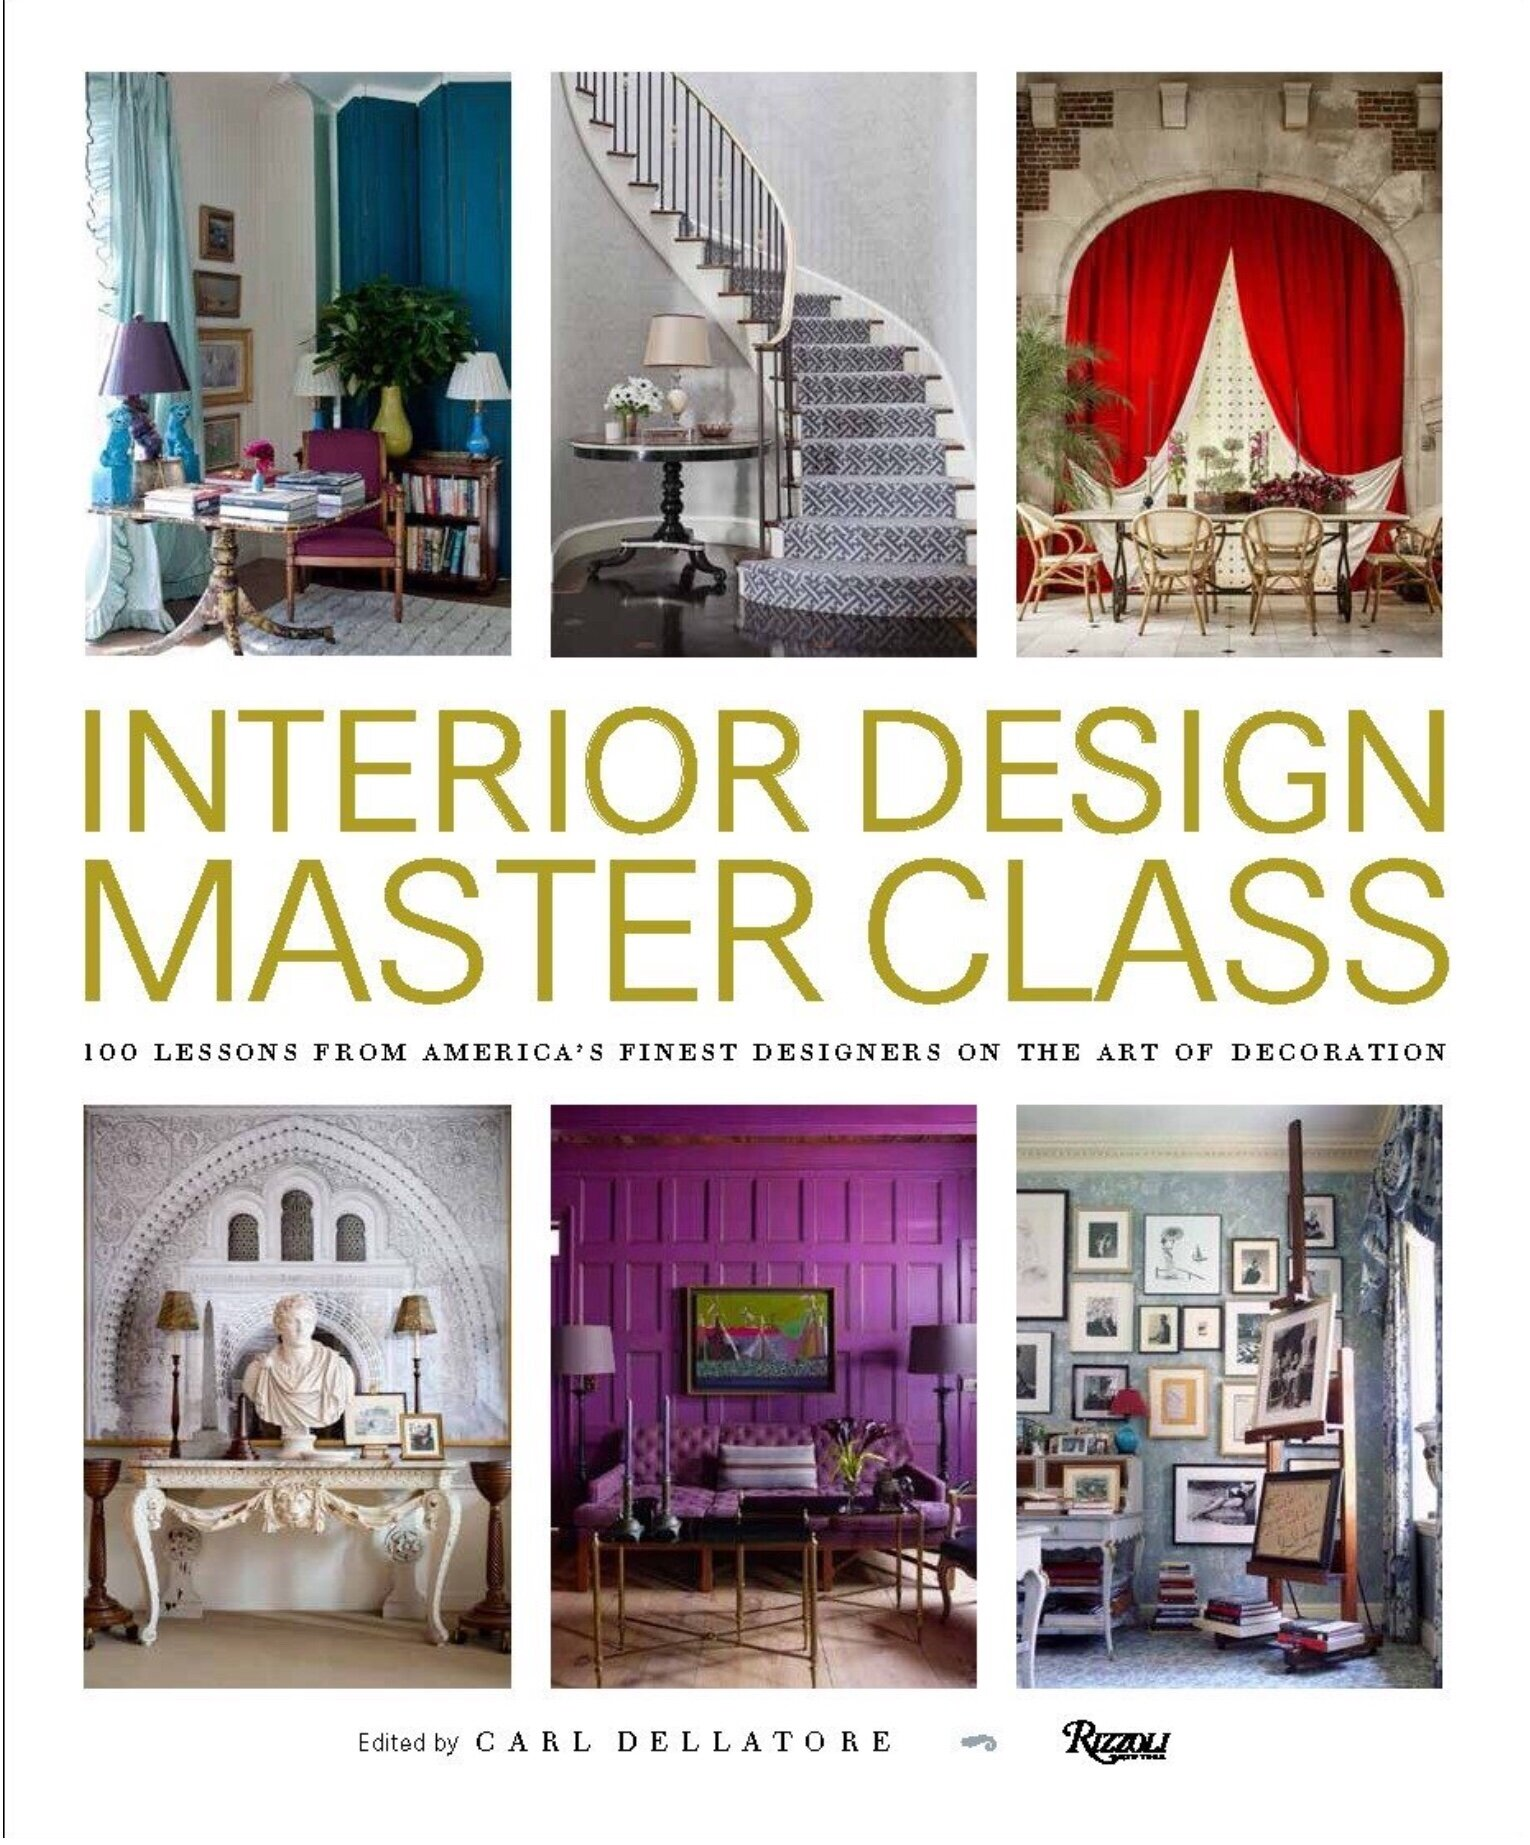 I saved best for the last ! This is truly the master class of design .Book compiles hundred essays on various design topics from masters of Interior Design.  From Charlotte Moss to Bunny Williams book offers expertise and the knowledge on Interior Design from the best in the field.